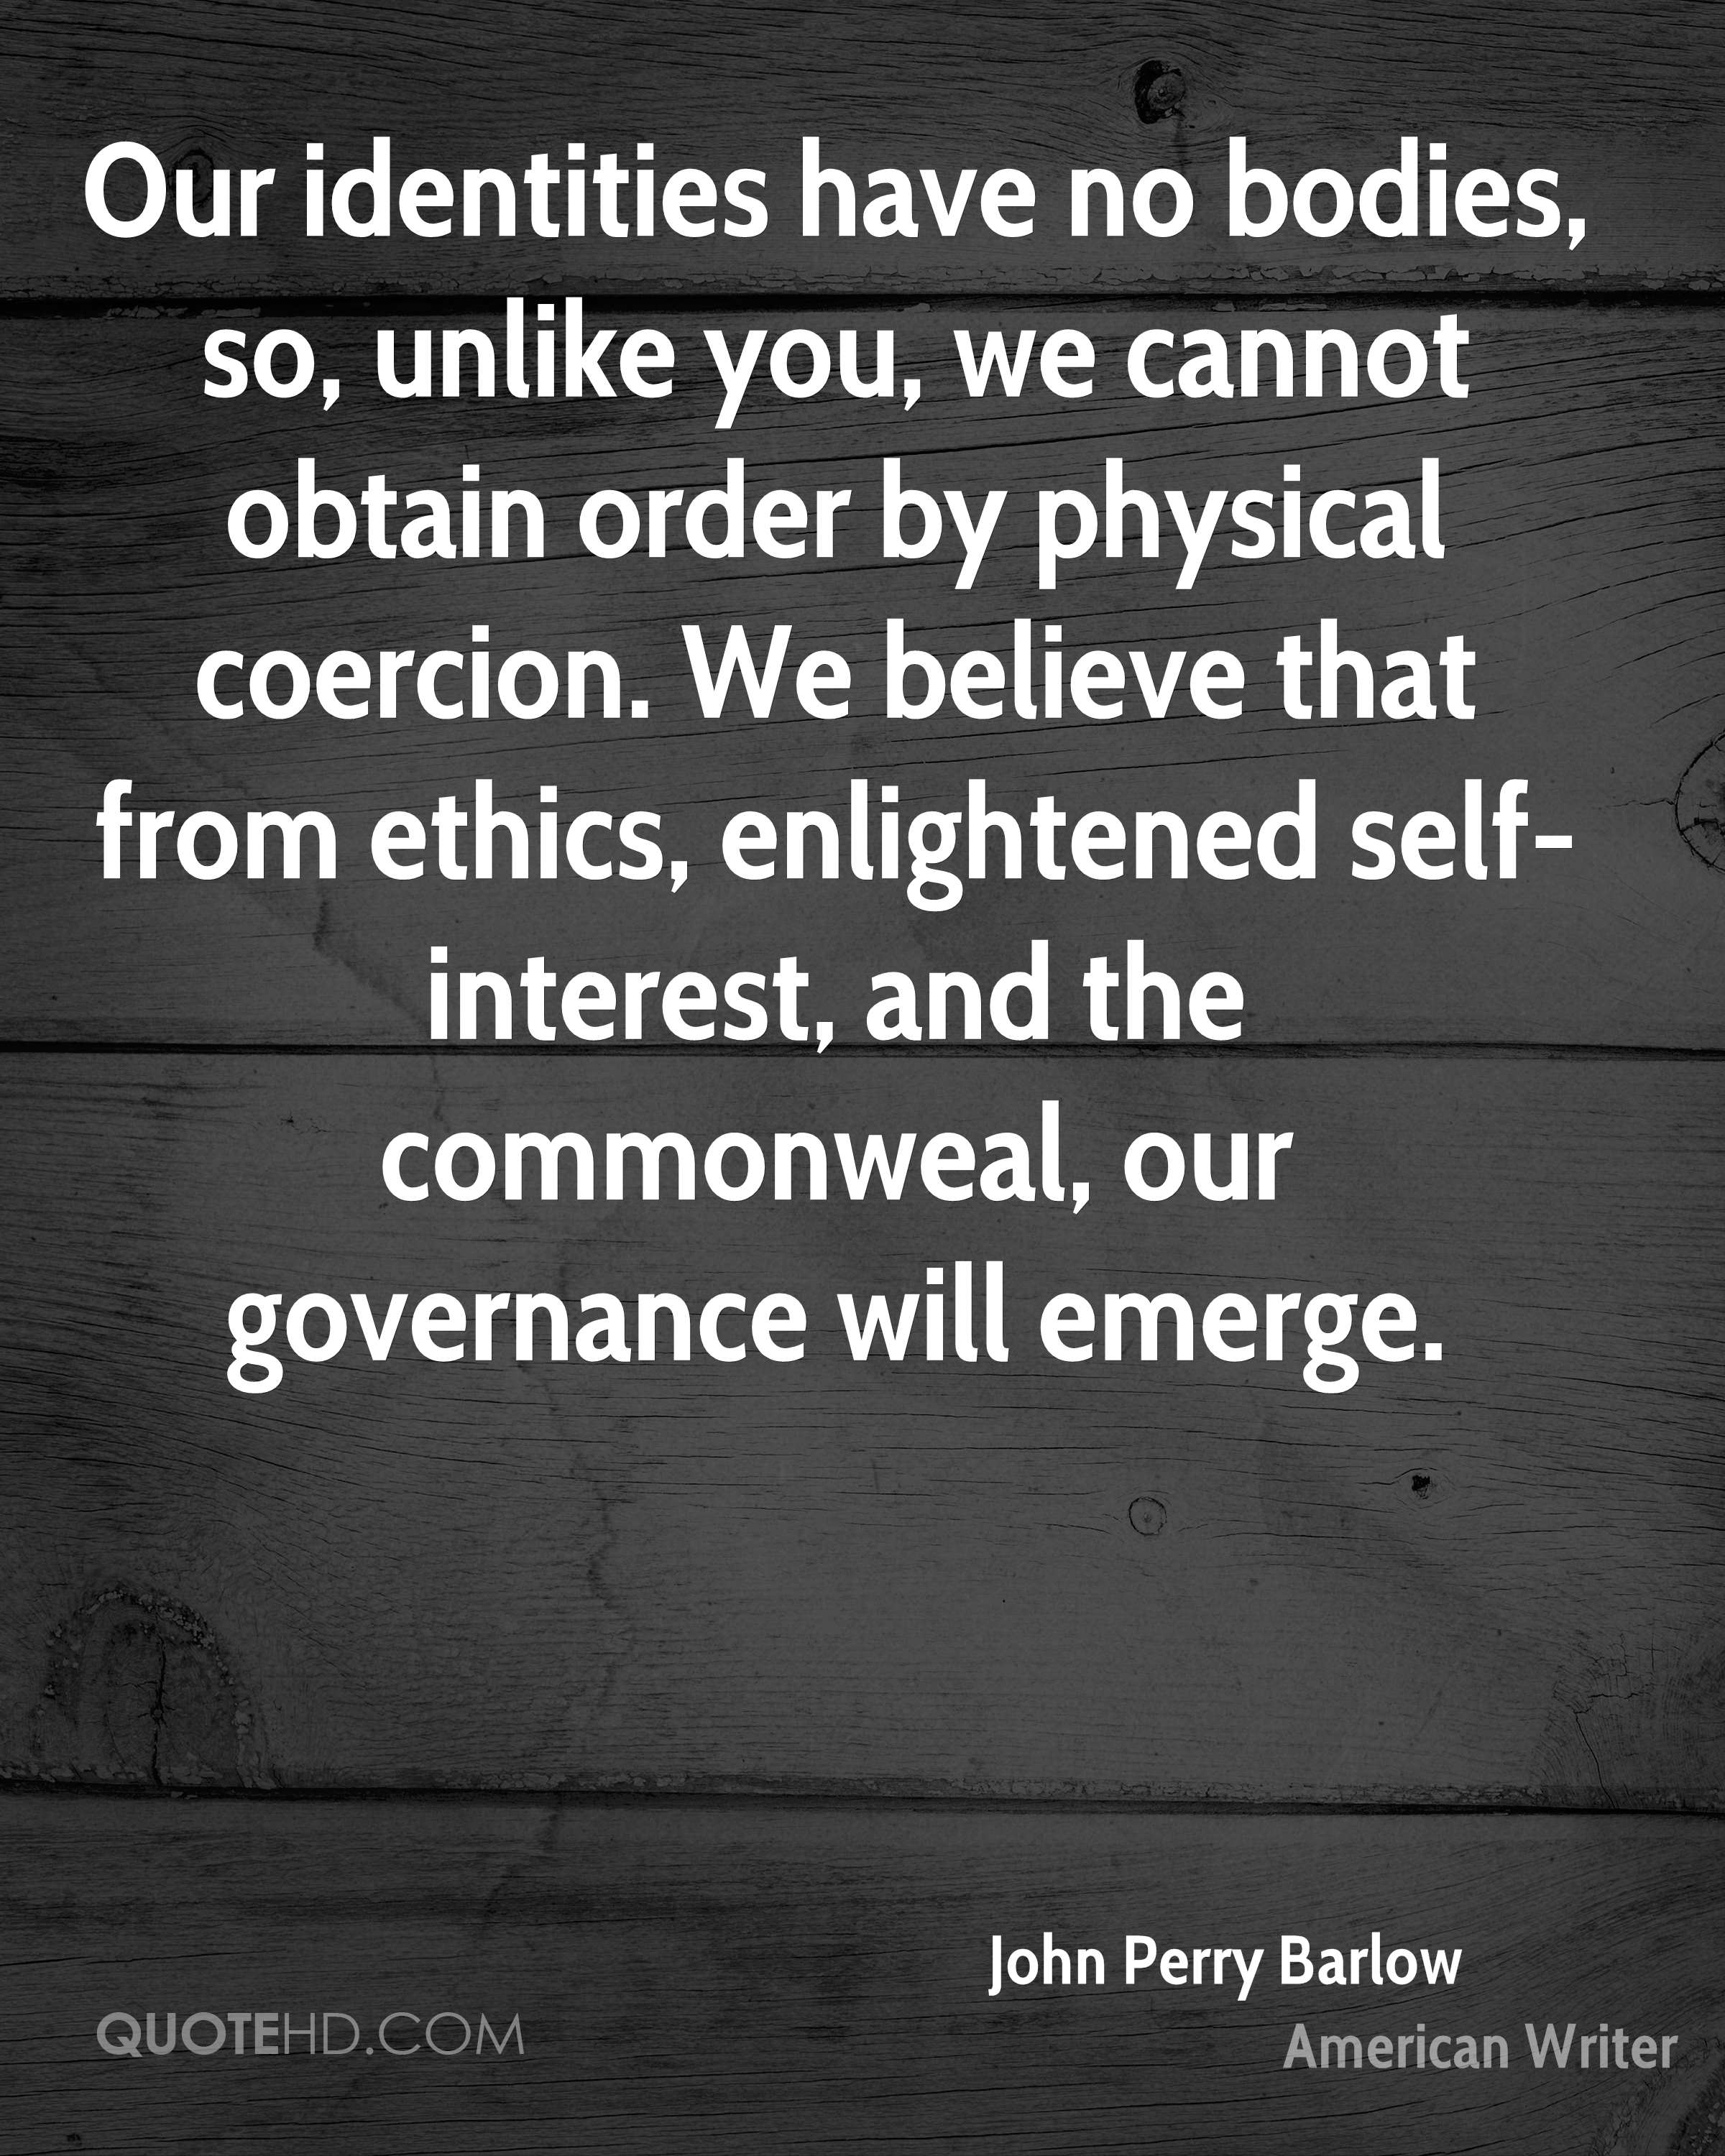 Our identities have no bodies, so, unlike you, we cannot obtain order by physical coercion. We believe that from ethics, enlightened self-interest, and the commonweal, our governance will emerge.